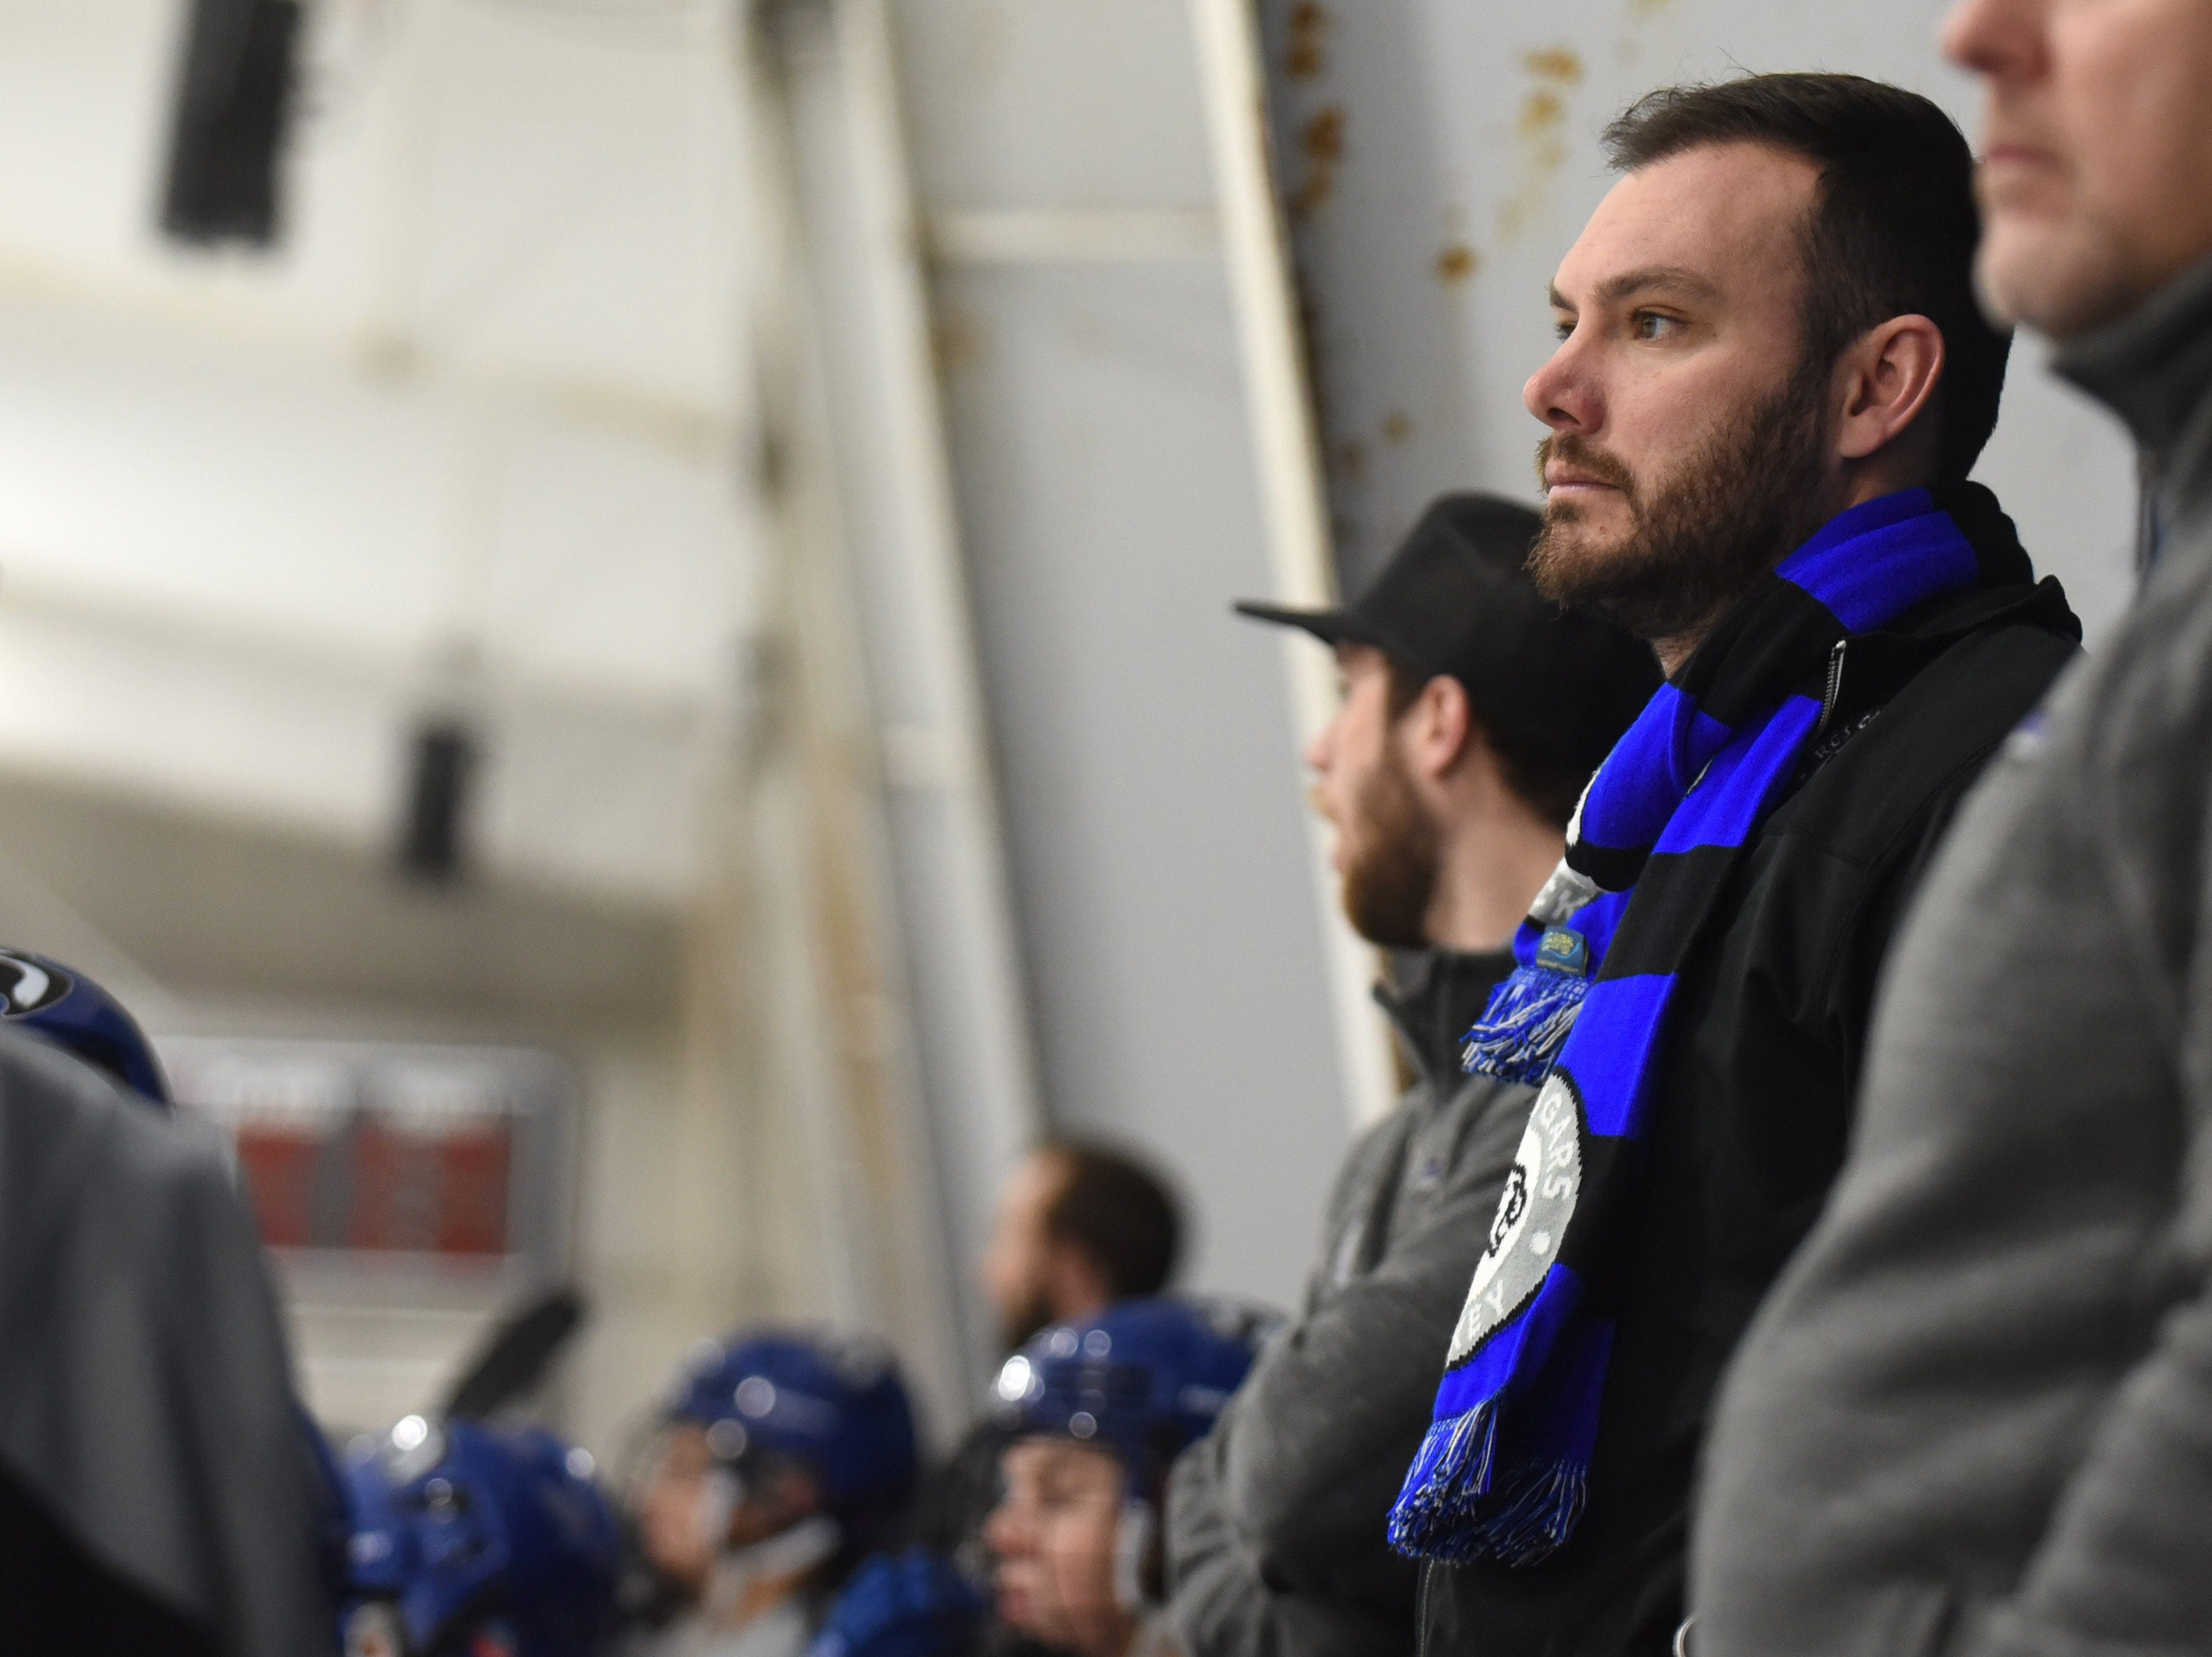 Resurrection Christian coach Jake Pence watches from the bench during the game against Fort Collins on Saturday, Feb 2, at NoCo Ice Center, 7900 N Fairgrounds Ave, in Fort Collins.